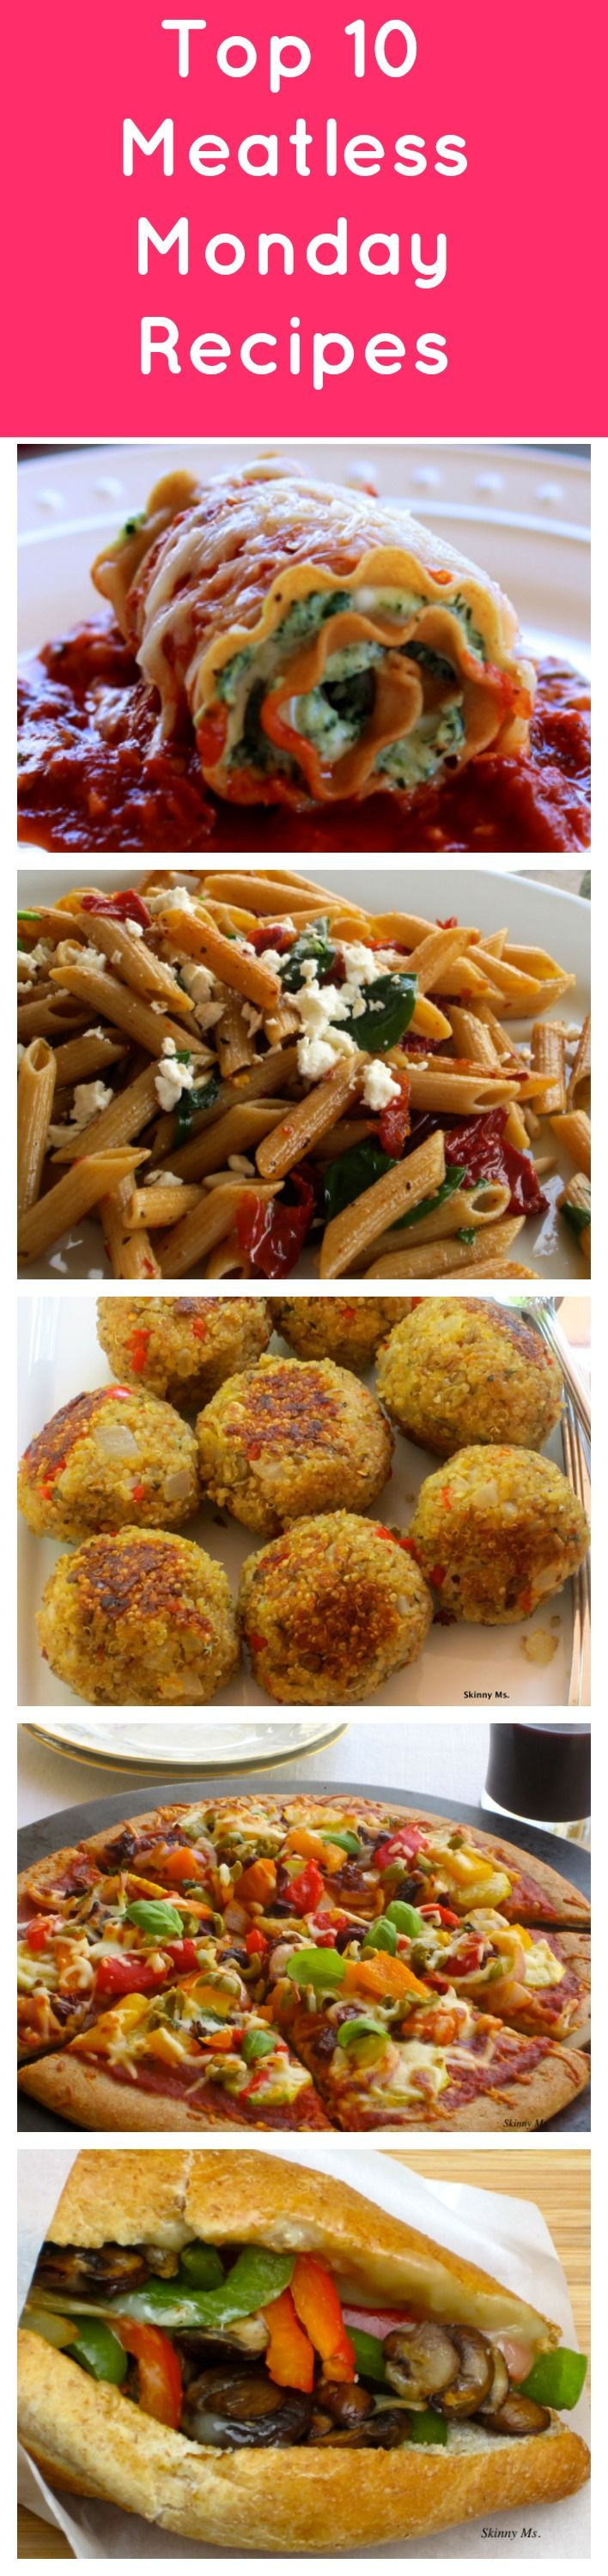 Top 10 Meatless Monday Recipes. Enjoy these tasty meals any night of the week! Recipes include: Skinny Lasagna Rolls, Mediterraean Pasta, Quinoa (Meatless) Meatballs, Zuccini Pizza and Vegetarian Philly Cheesesteak, plus more. #meatless #monday